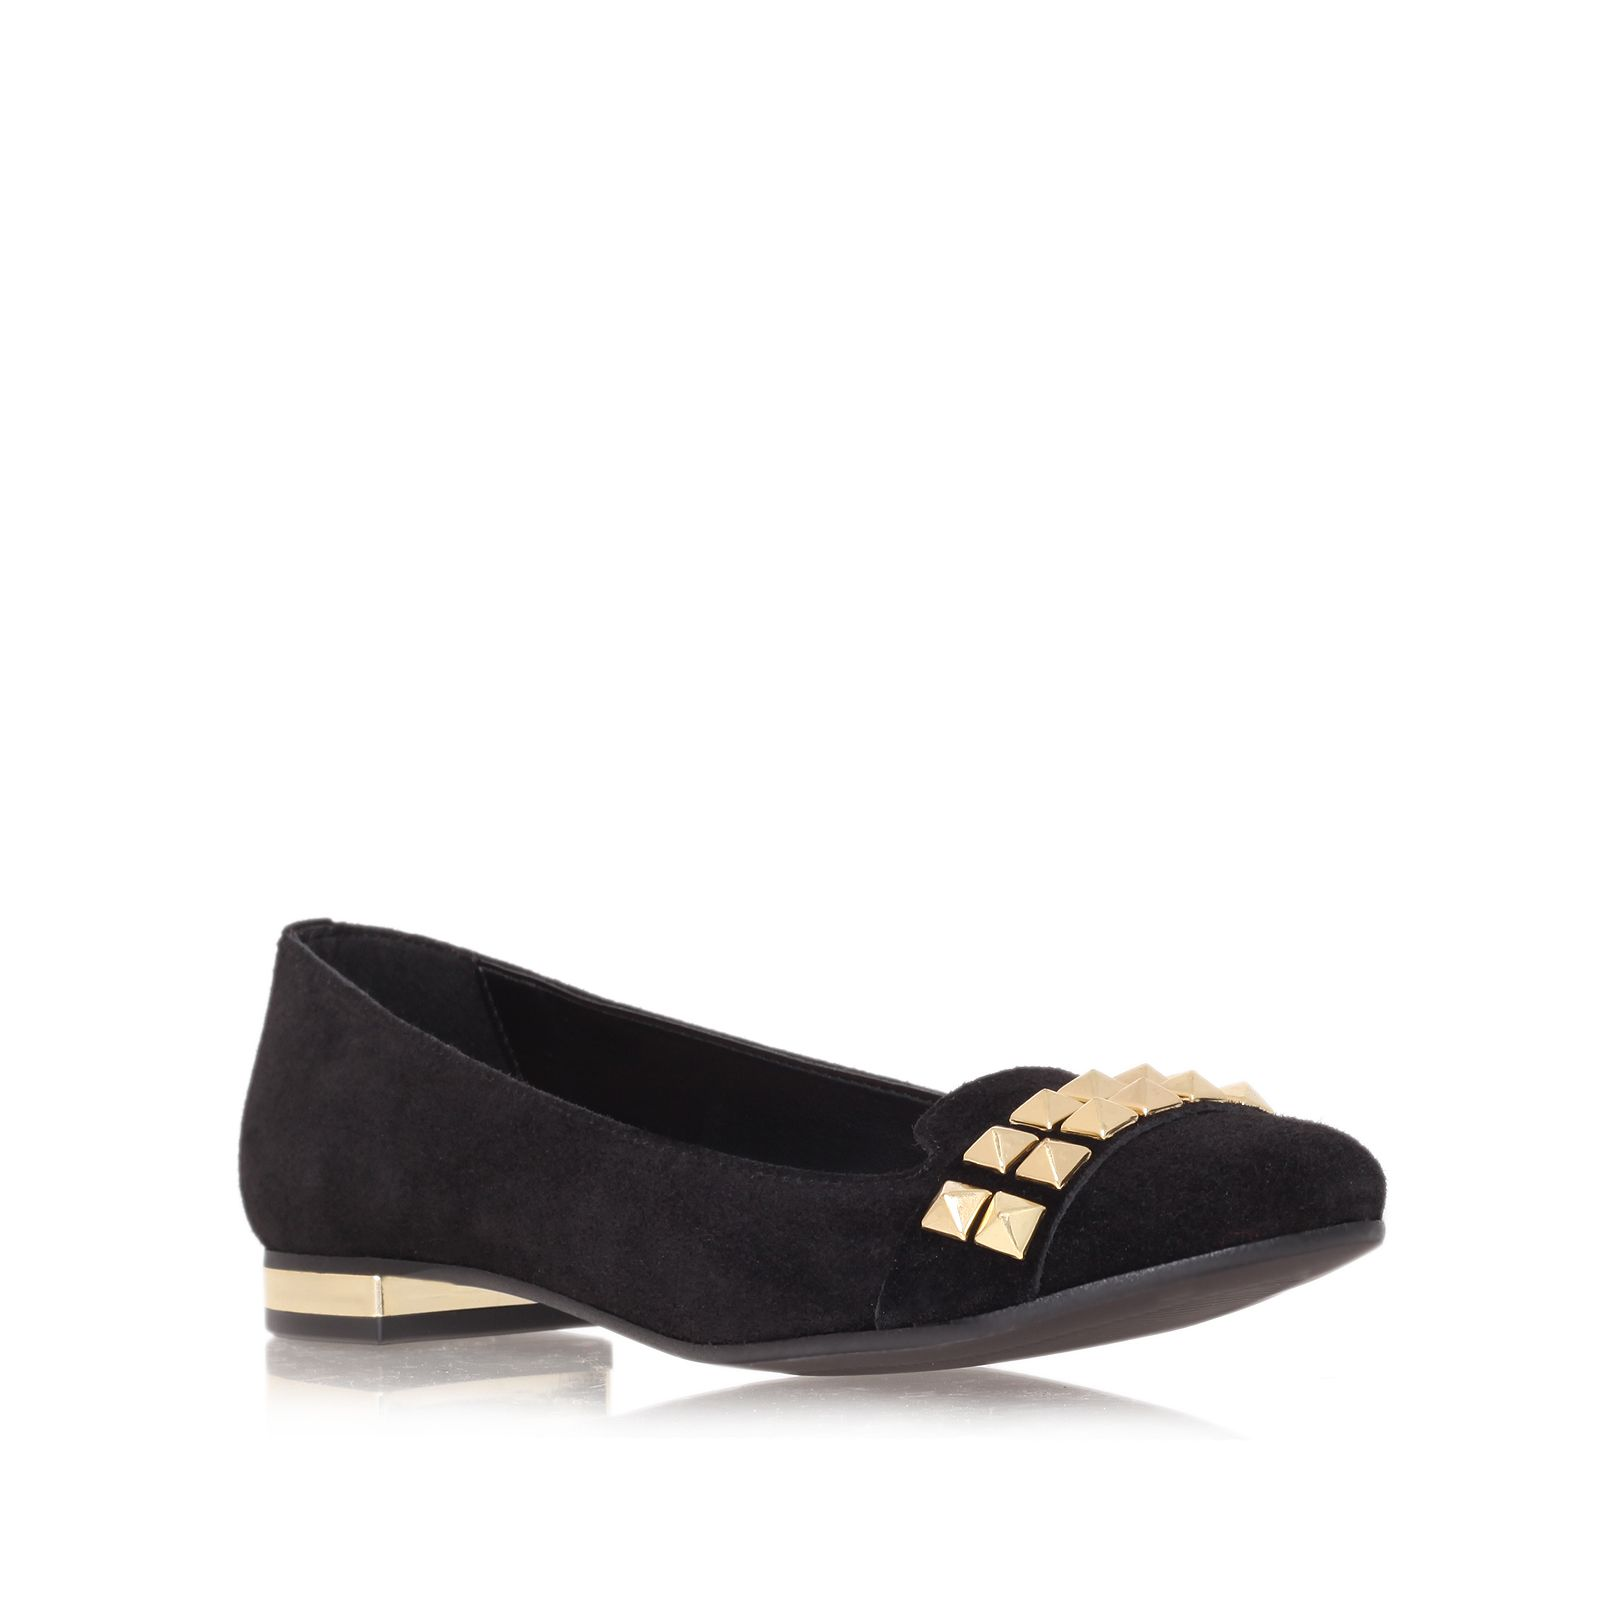 House Of Fraser Carvela Black Shoes